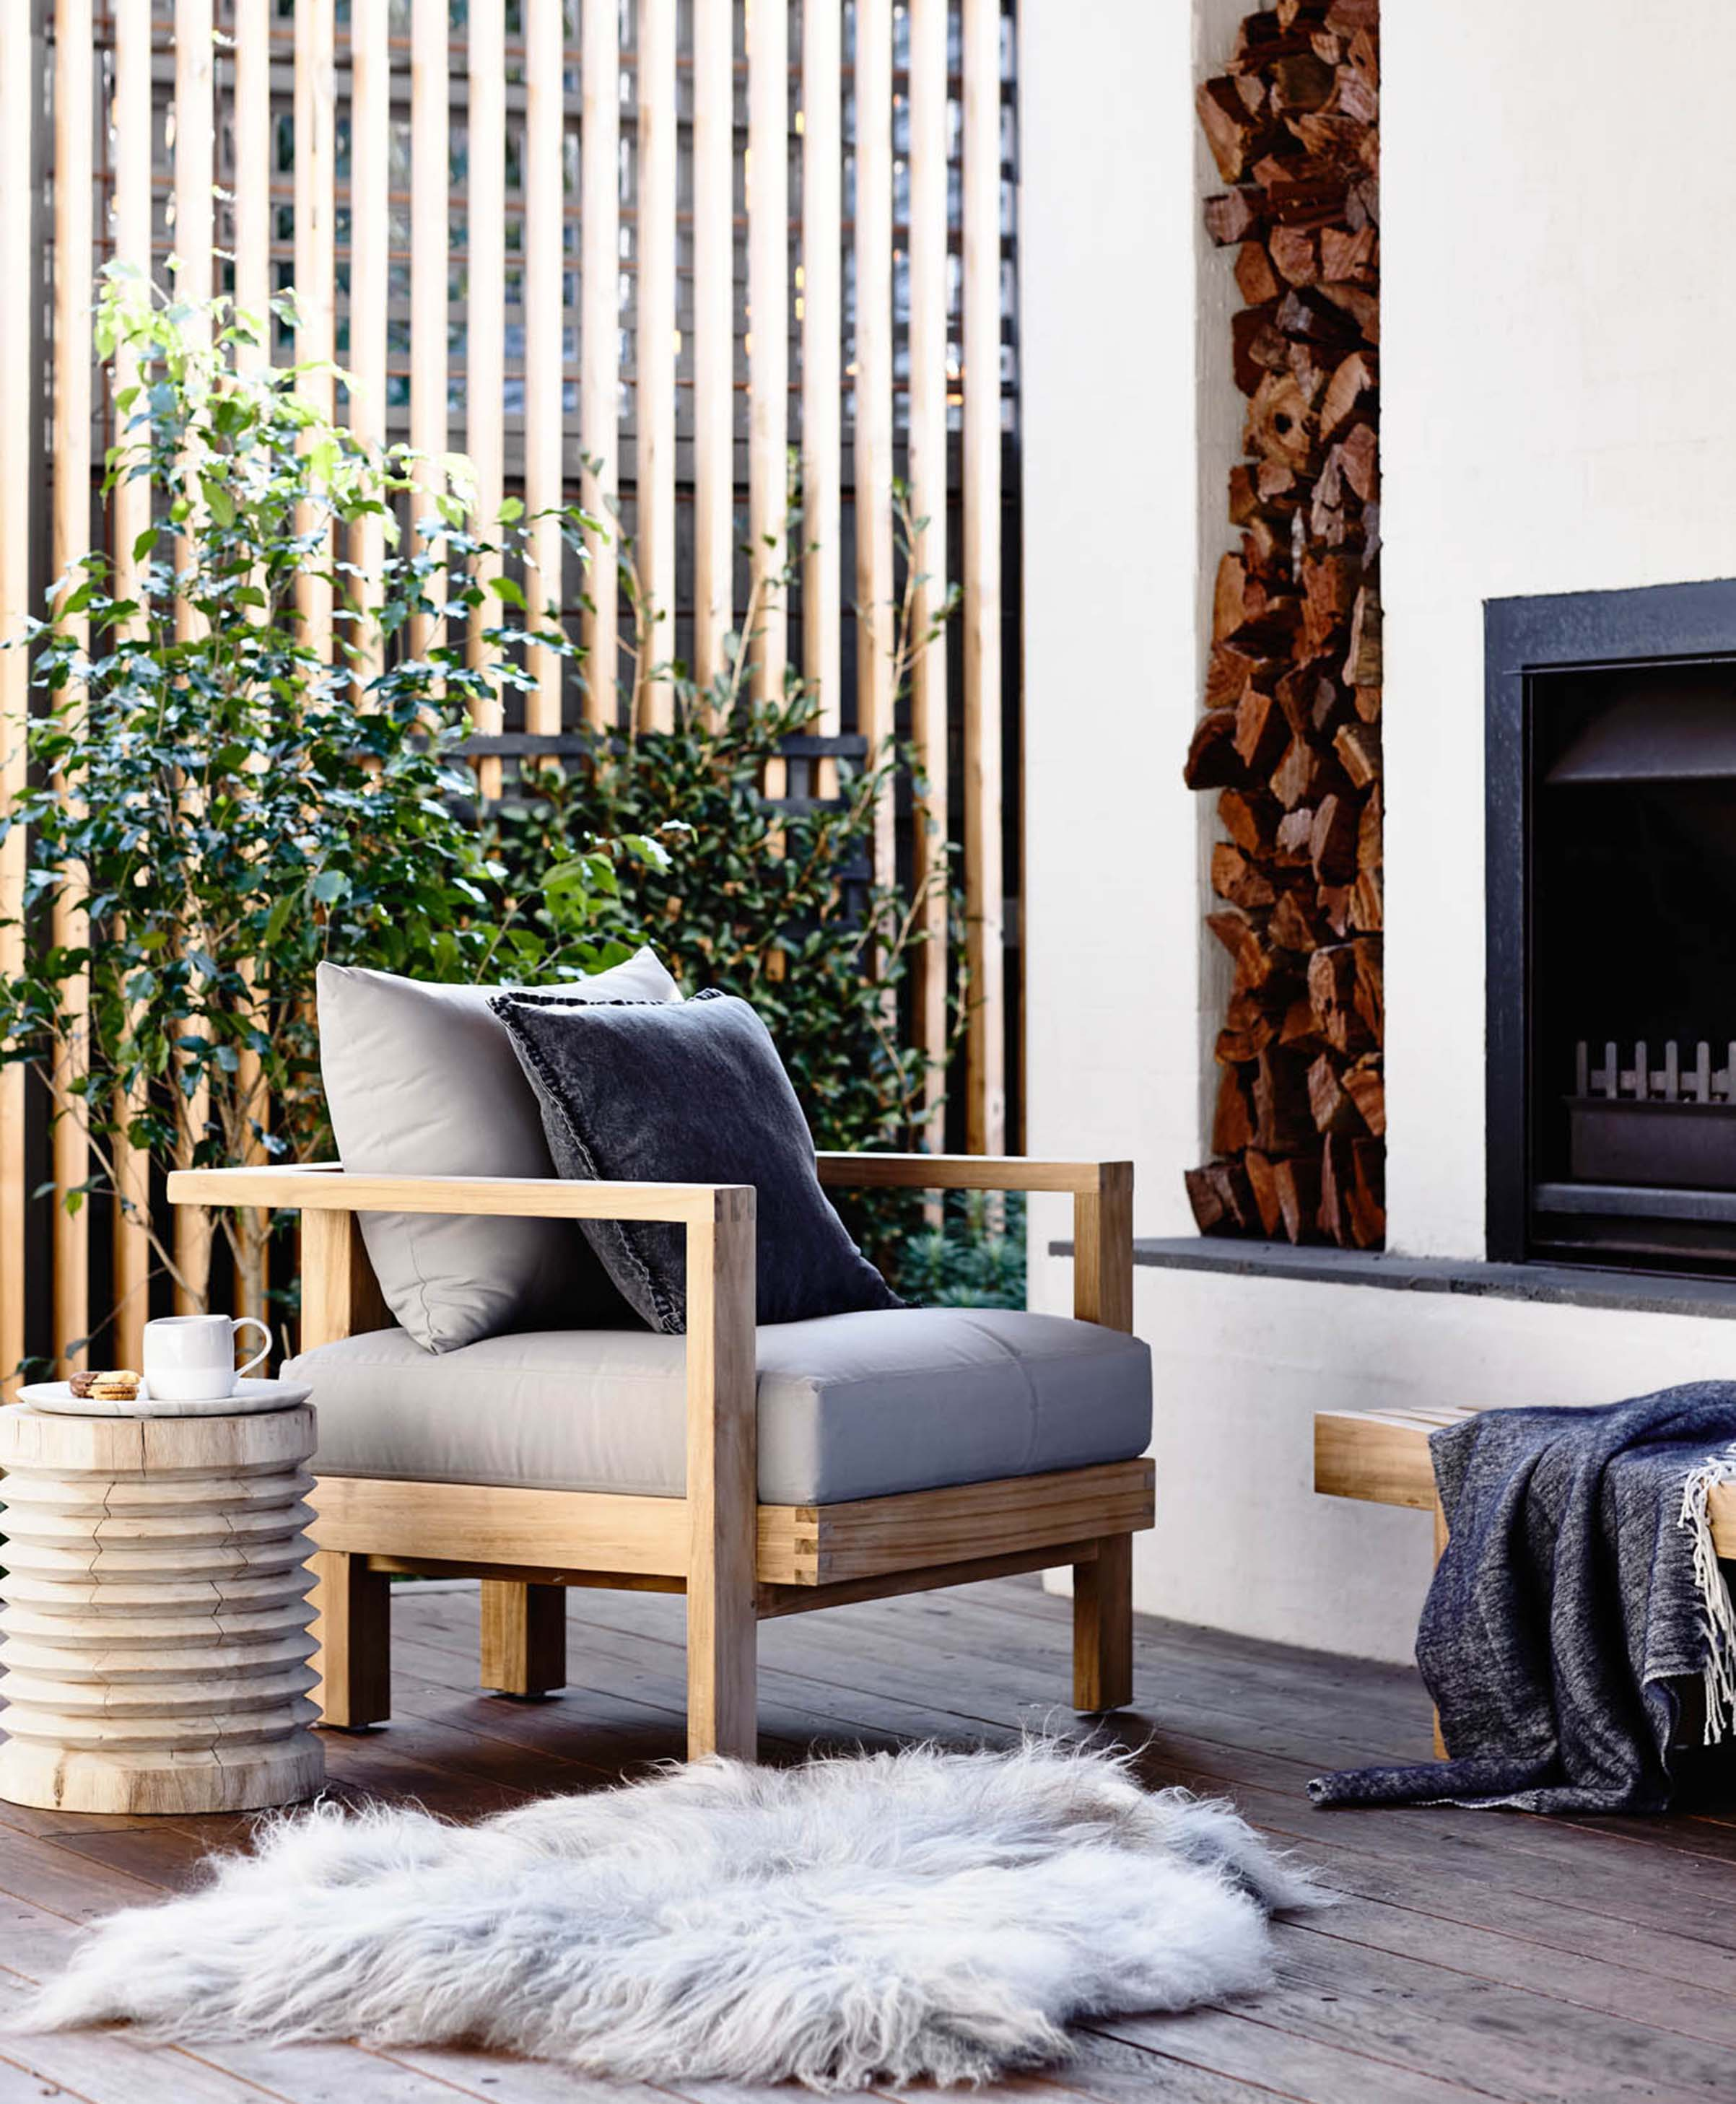 Blog In-article-images benefits-of-teak-furniture-and-care-tips-04